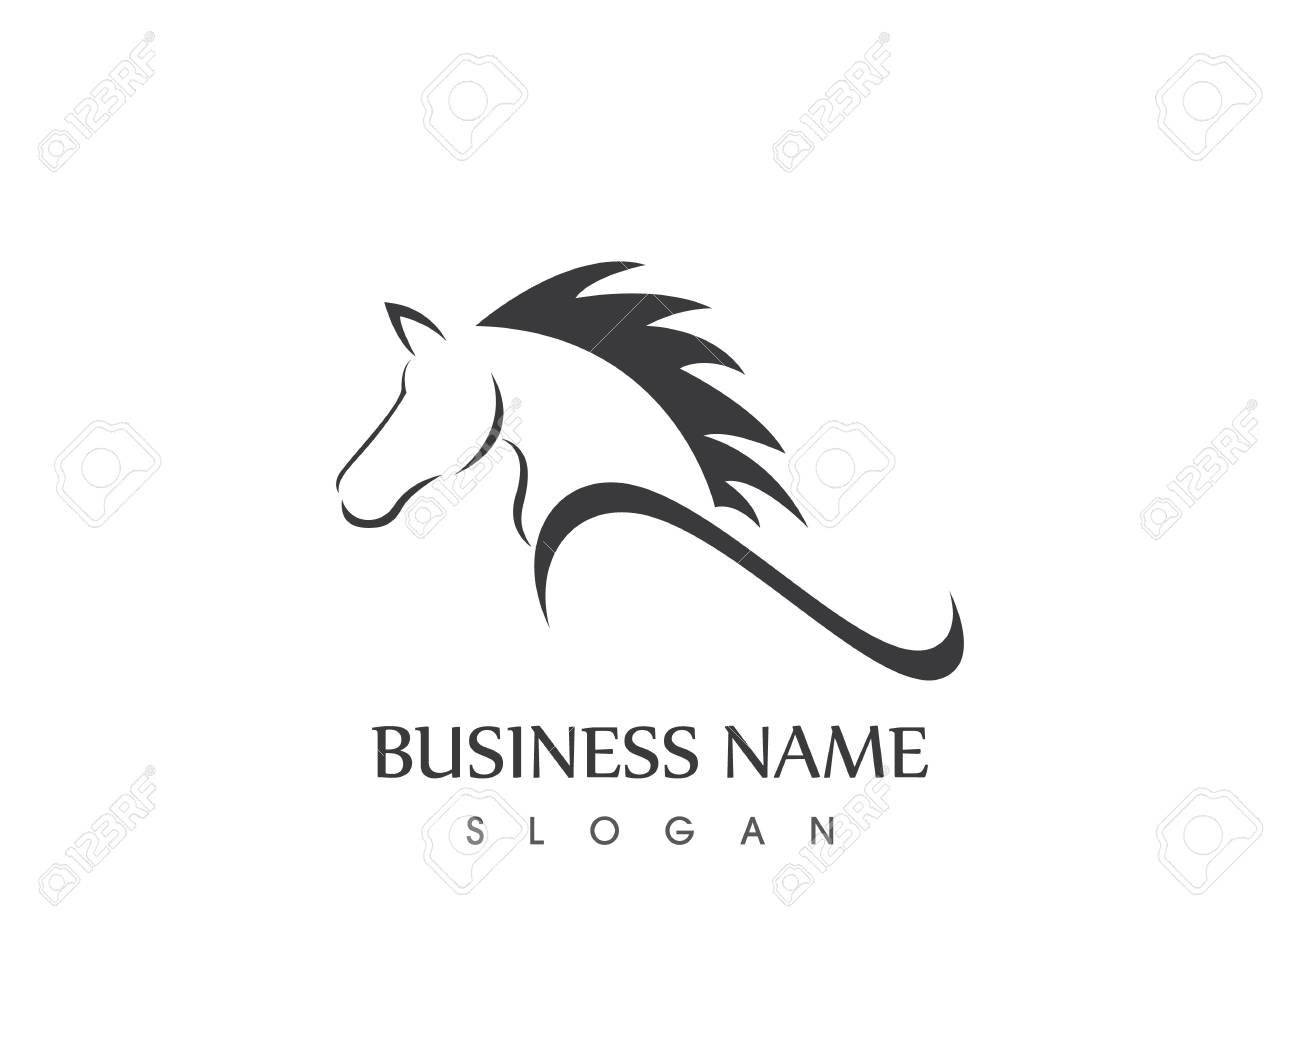 Horse Head Silhouette Vector Design Tattoo Logo Royalty Free Cliparts Vectors And Stock Illustration Image 82425808